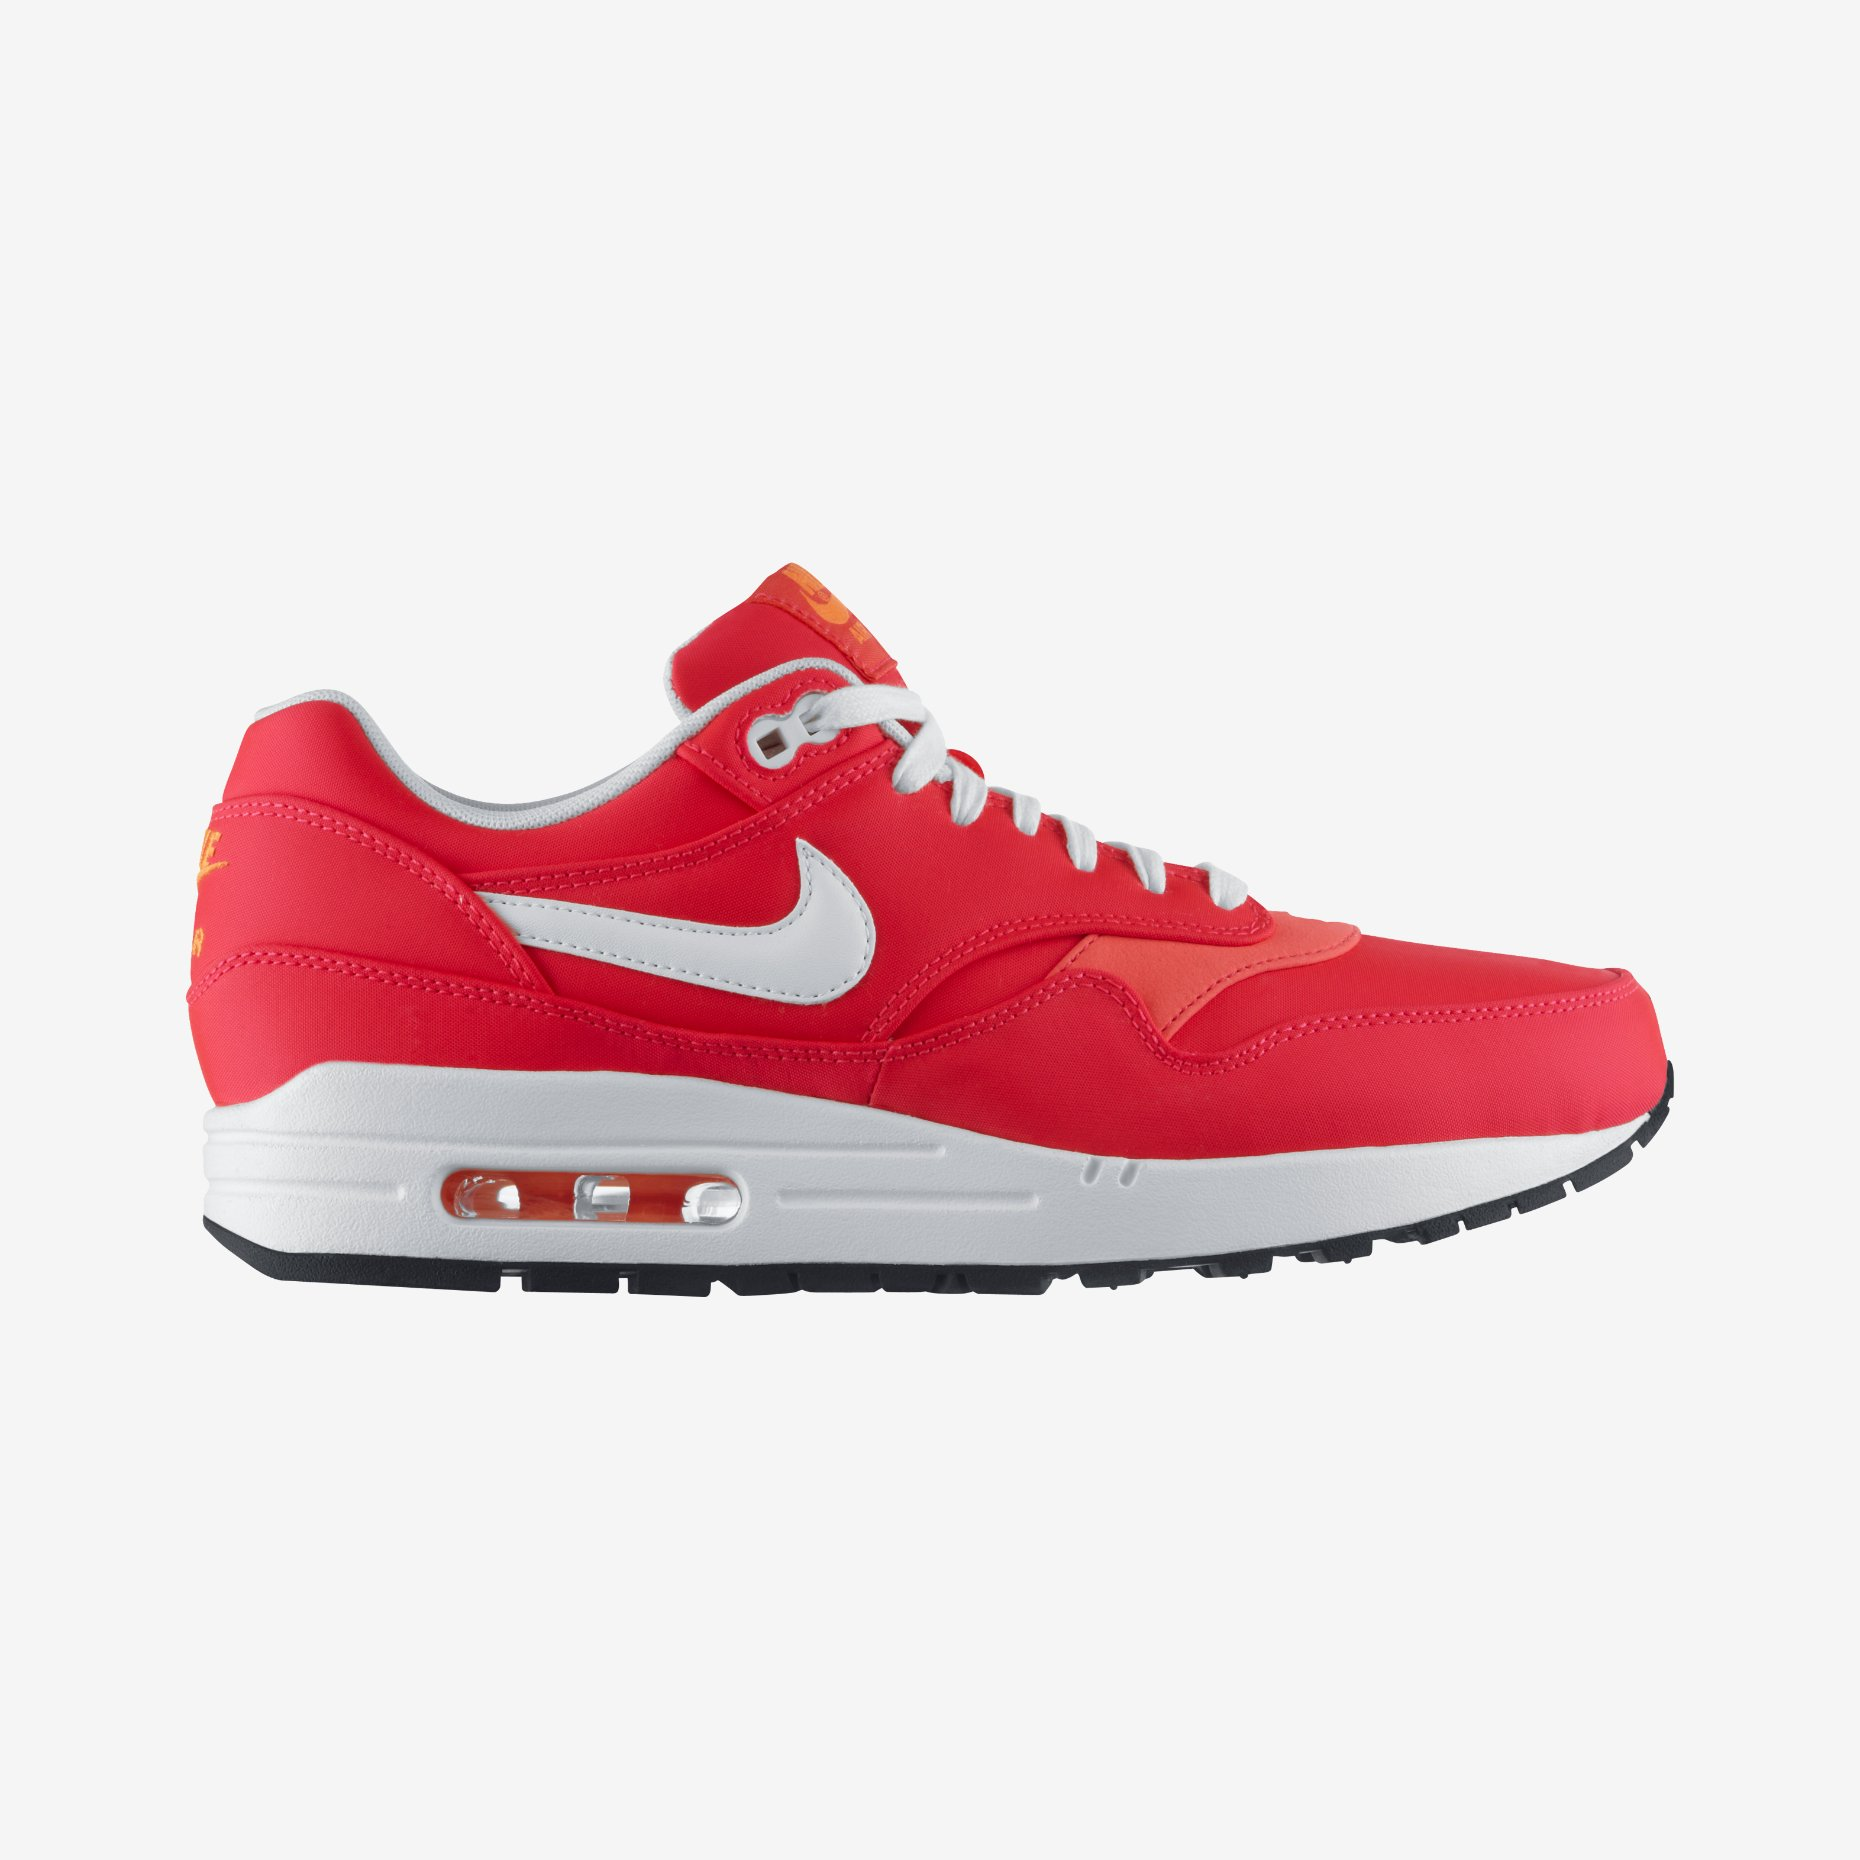 nike air max 1 premium qs hyper punch total orange. Black Bedroom Furniture Sets. Home Design Ideas